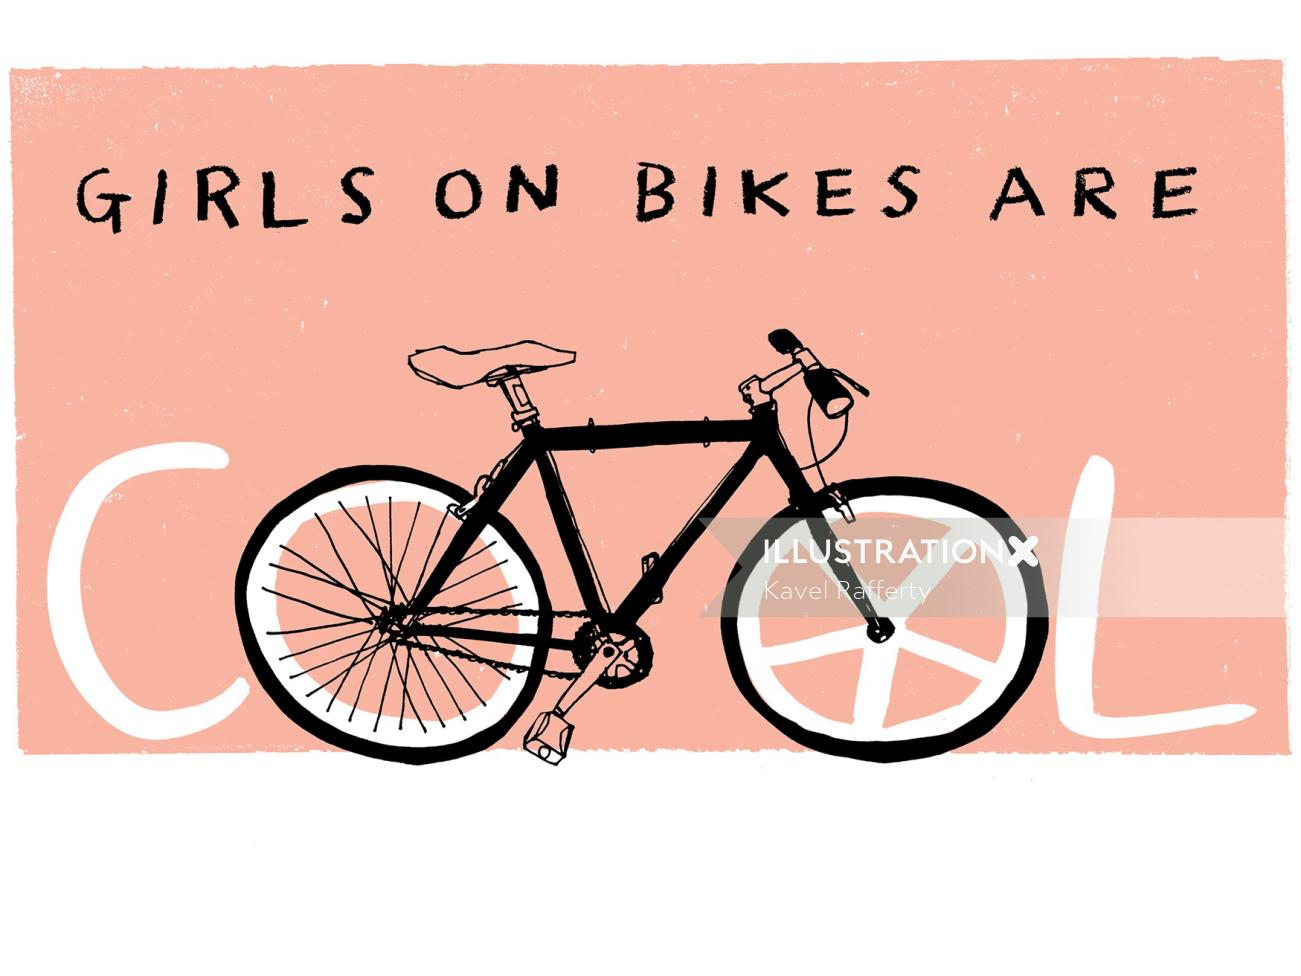 Girls on bikes are cool typography art